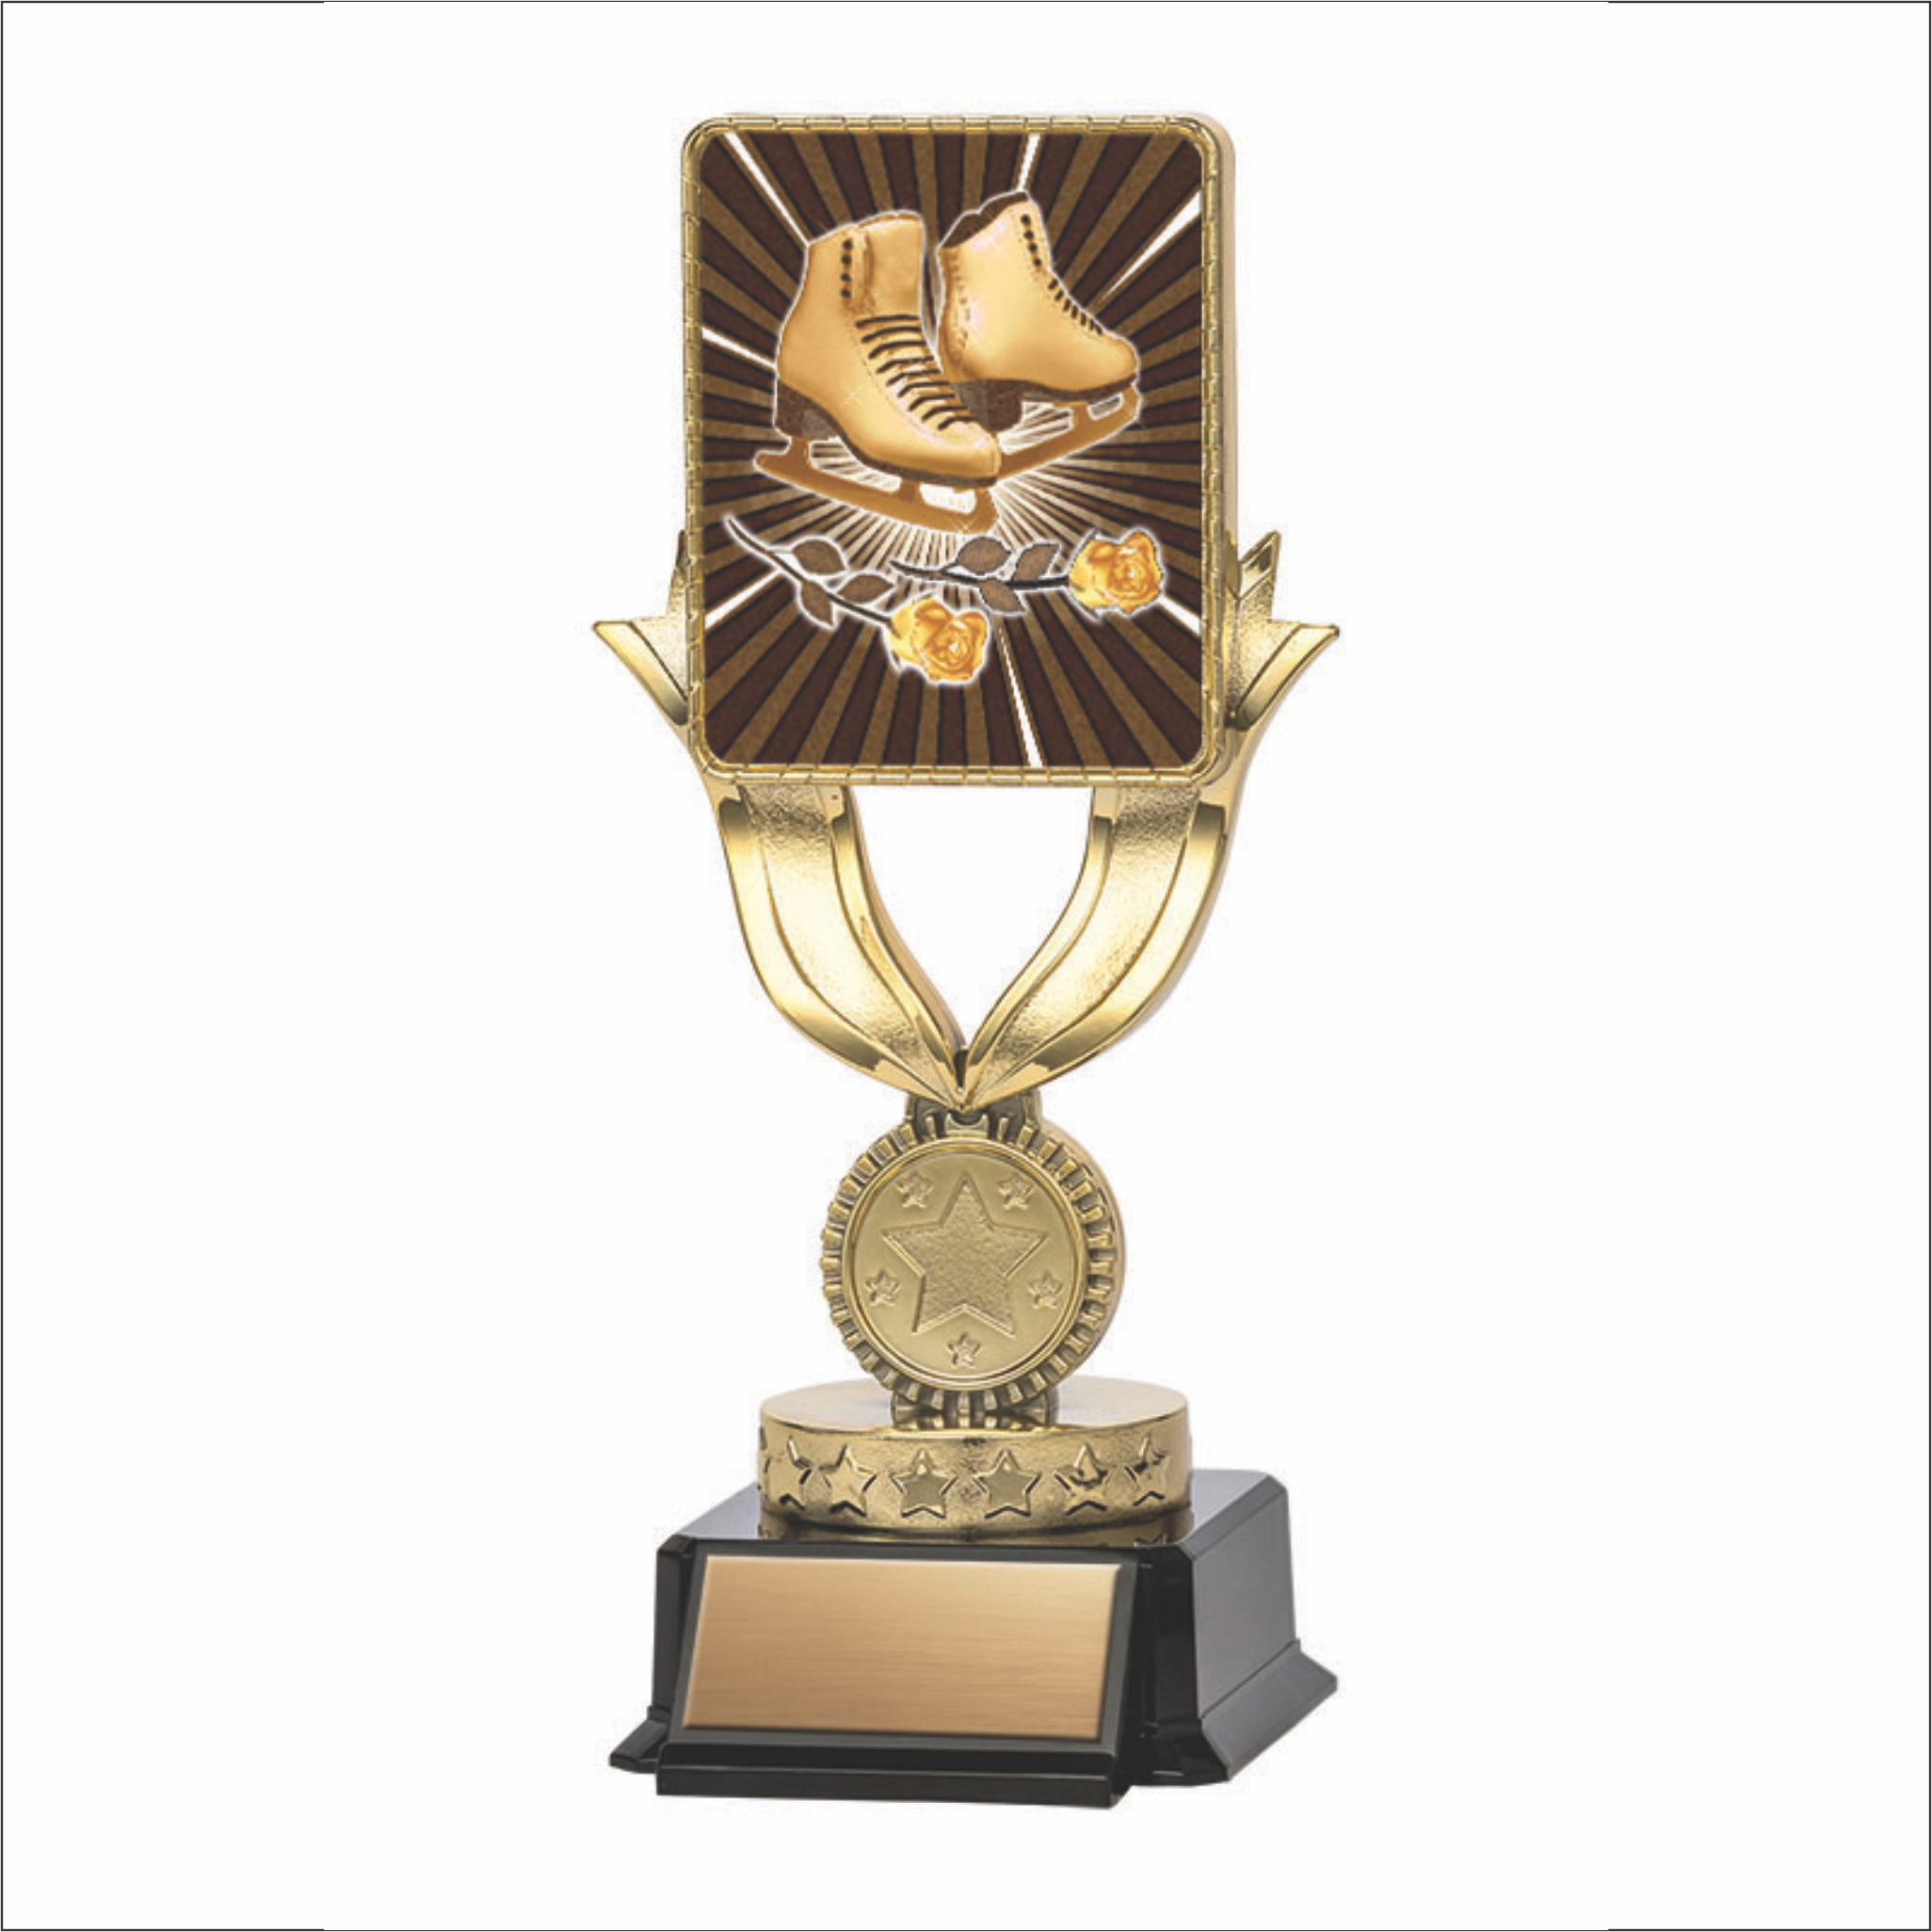 Figure Skating trophy - Lynx series